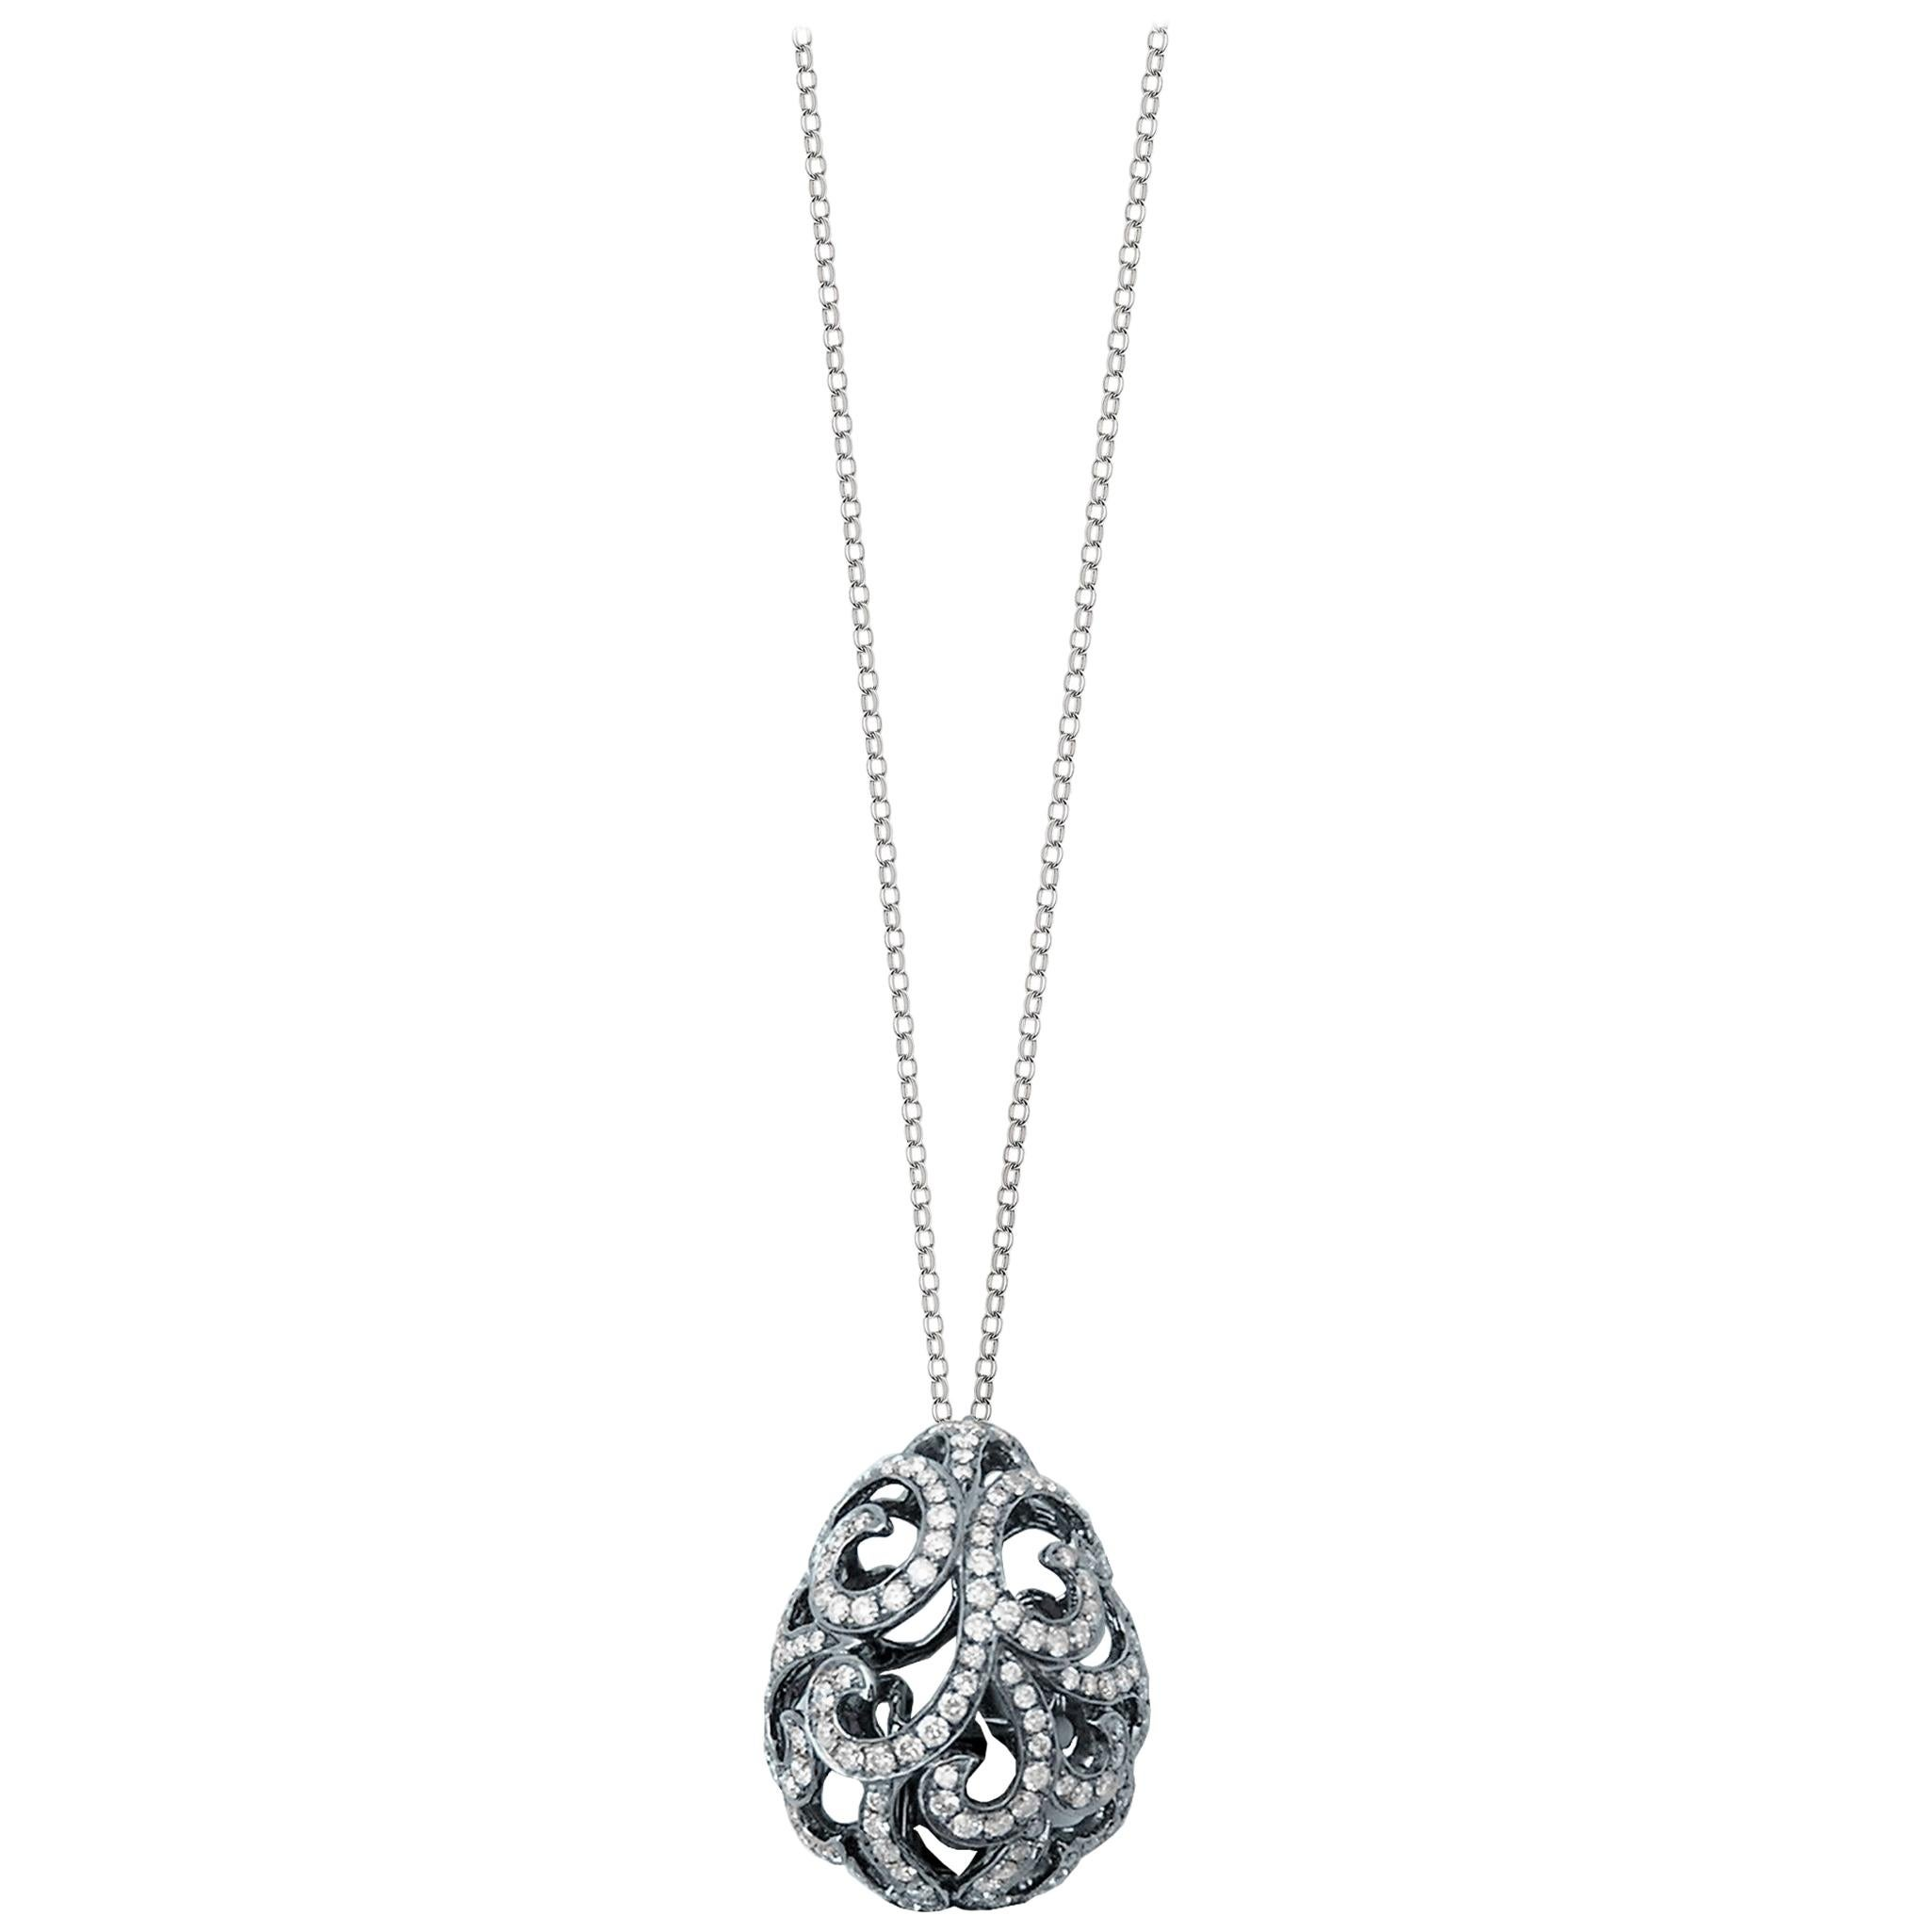 Fei Liu Diamond 18 Karat Black Gold Filigree Egg Pendant Necklace